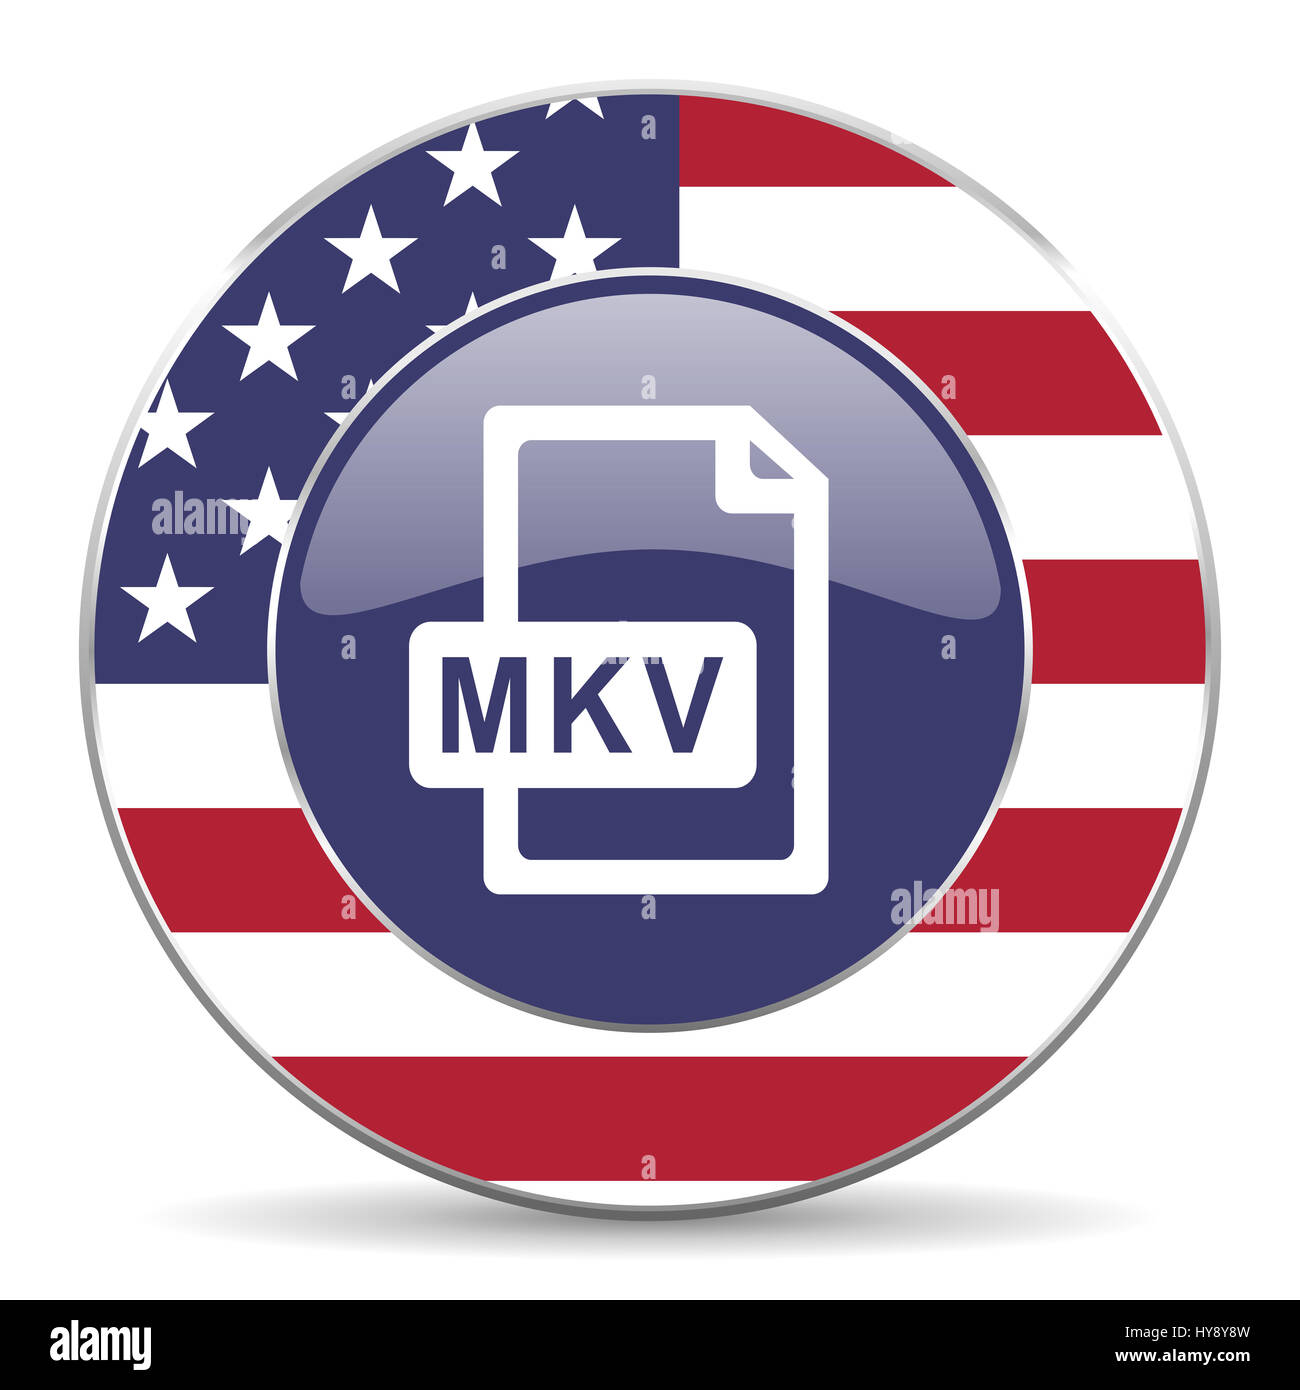 how to play mkv file on chrome